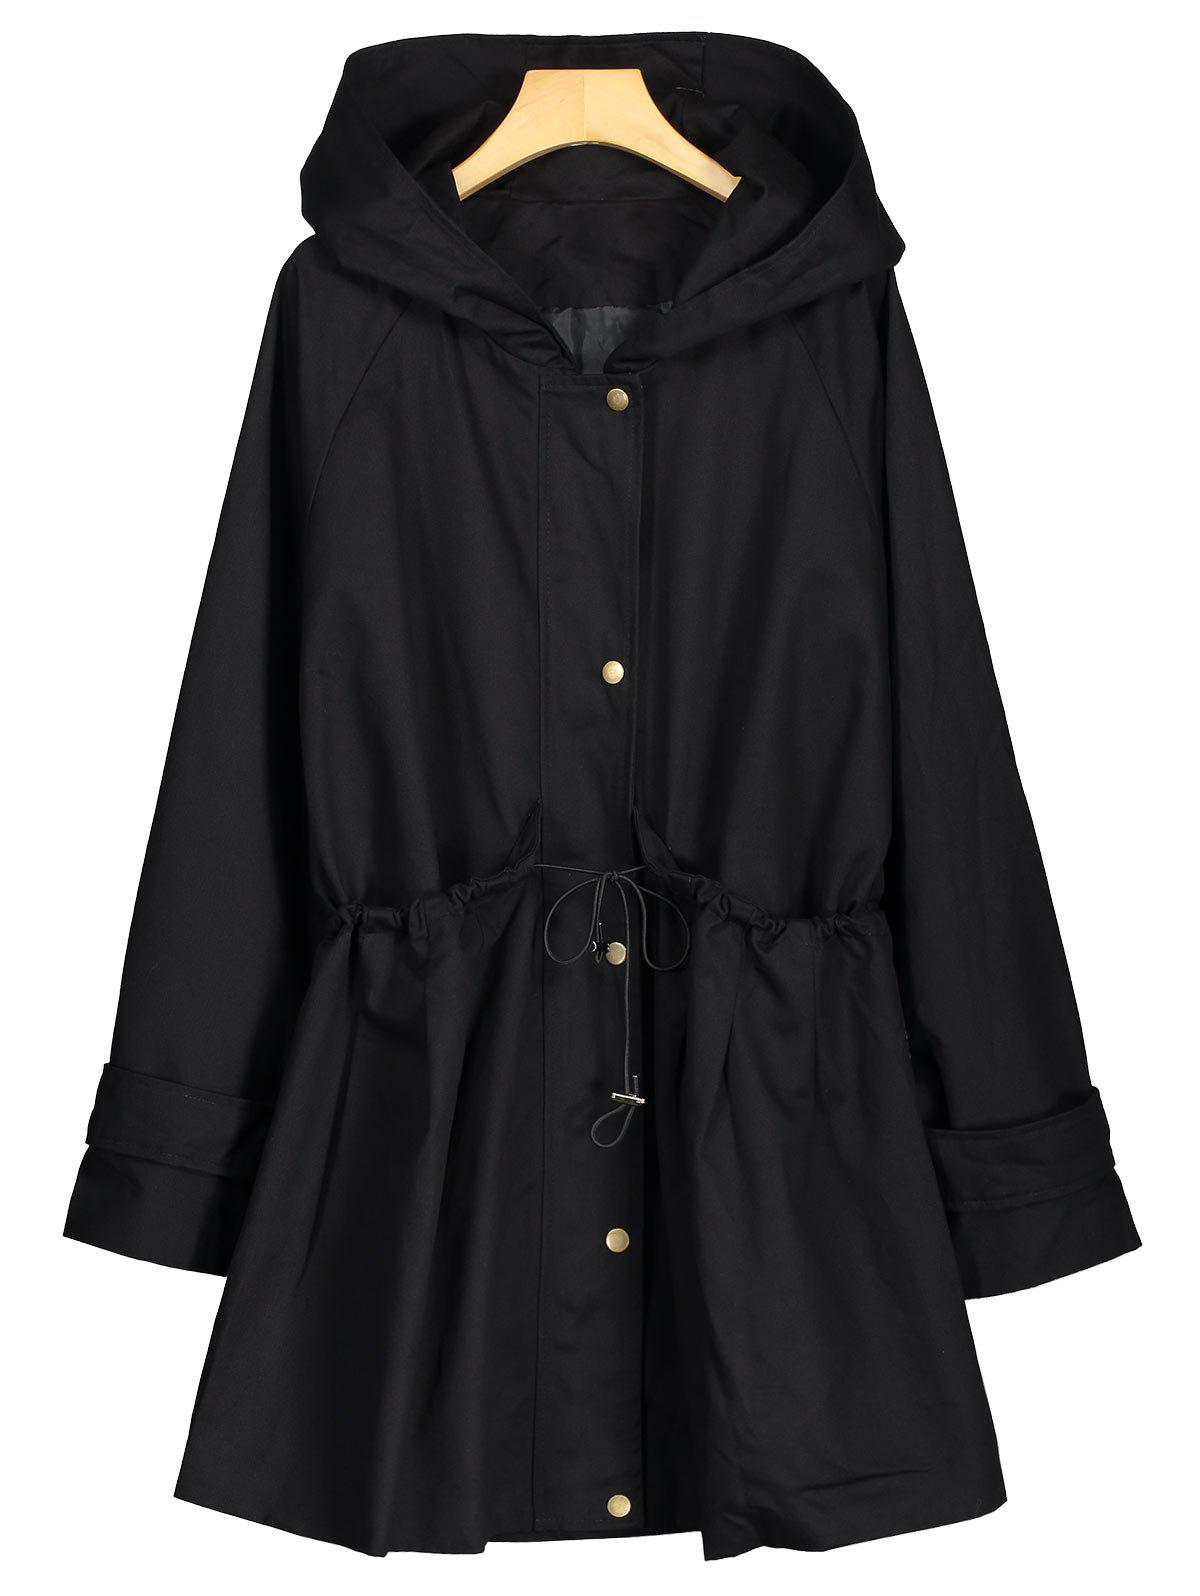 Hooded Long Plus Size Zip Up CoatWOMEN<br><br>Size: 4XL; Color: BLACK; Clothes Type: Others; Material: Polyester,Spandex; Type: Slim; Shirt Length: Long; Sleeve Length: Full; Collar: Hooded; Pattern Type: Solid; Style: Fashion; Season: Fall,Winter; Weight: 0.9300kg; Package Contents: 1 x Coat;